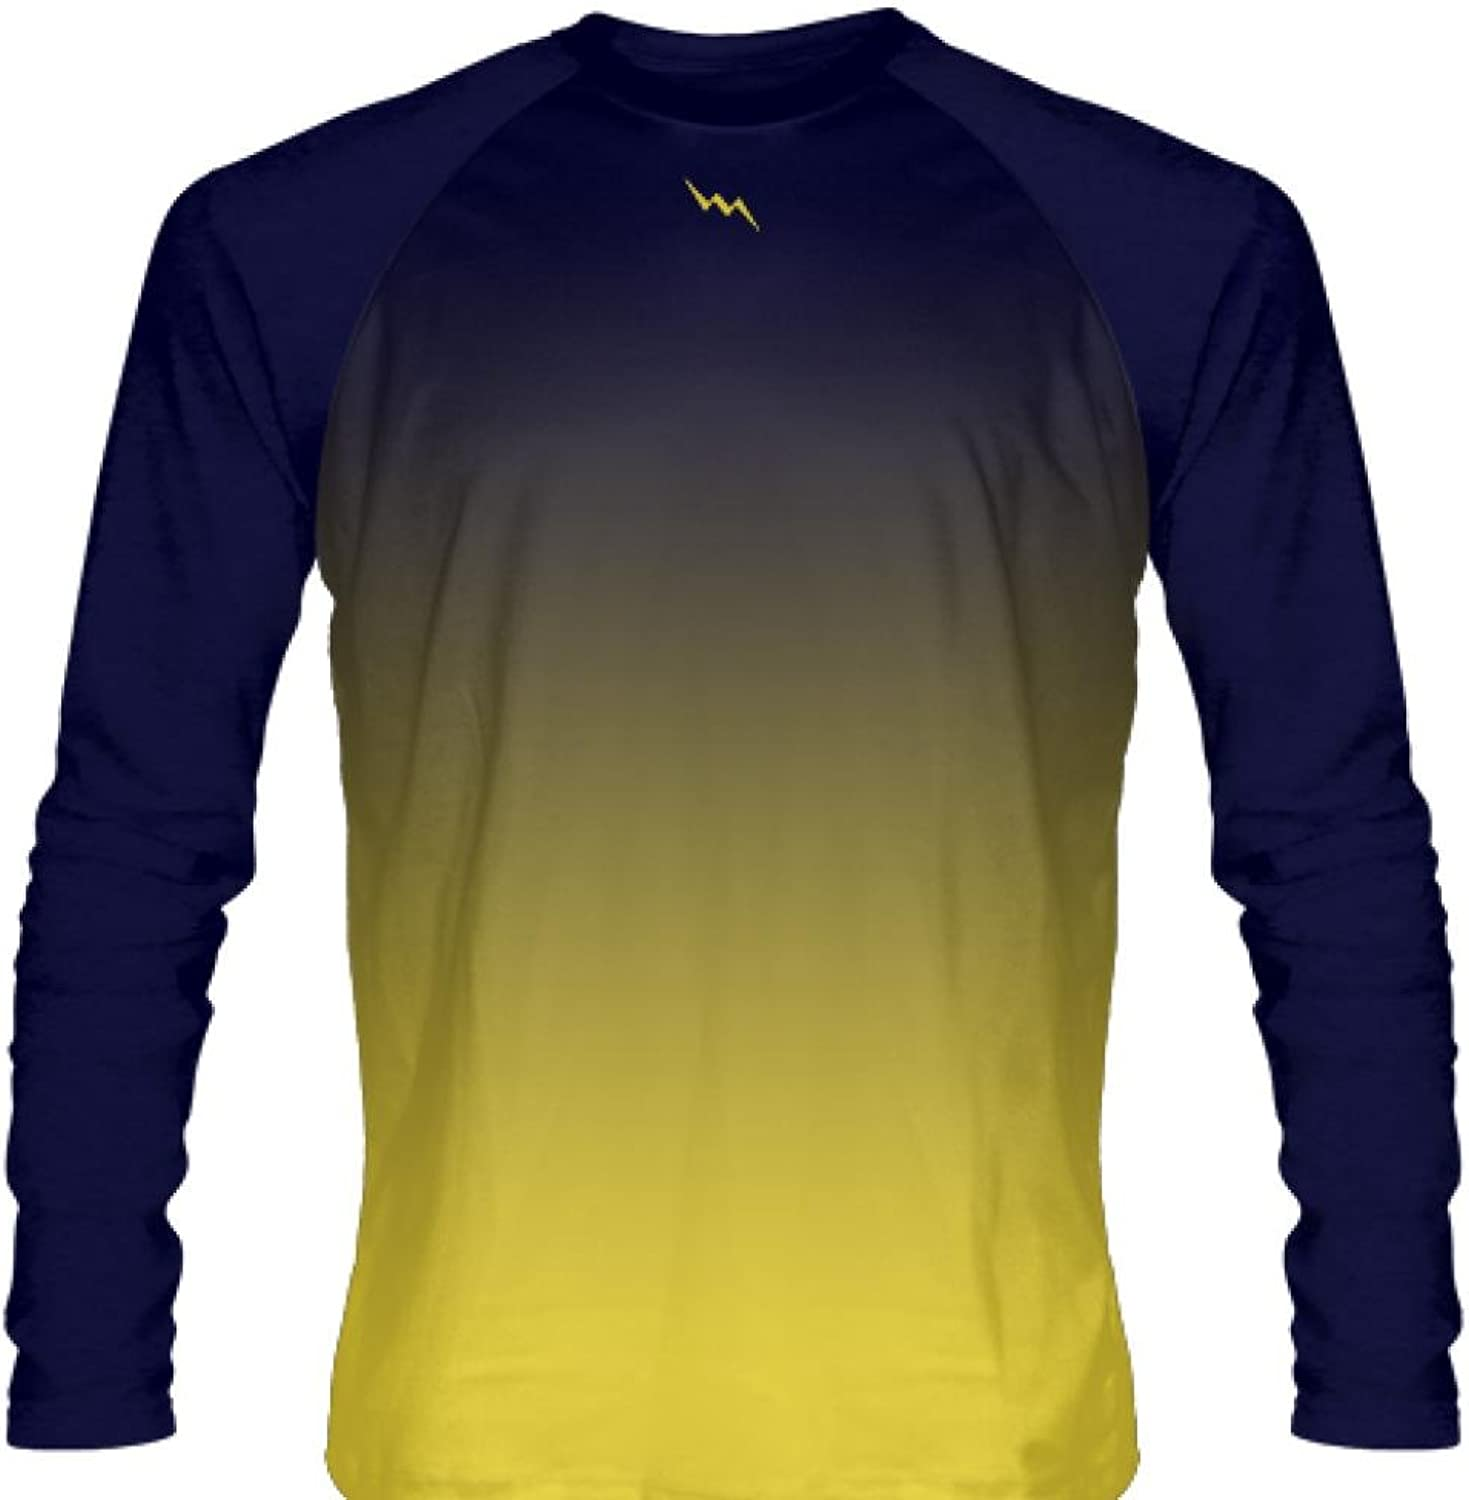 LightningWear Navy bluee Long Sleeve Lacrosse Shirts